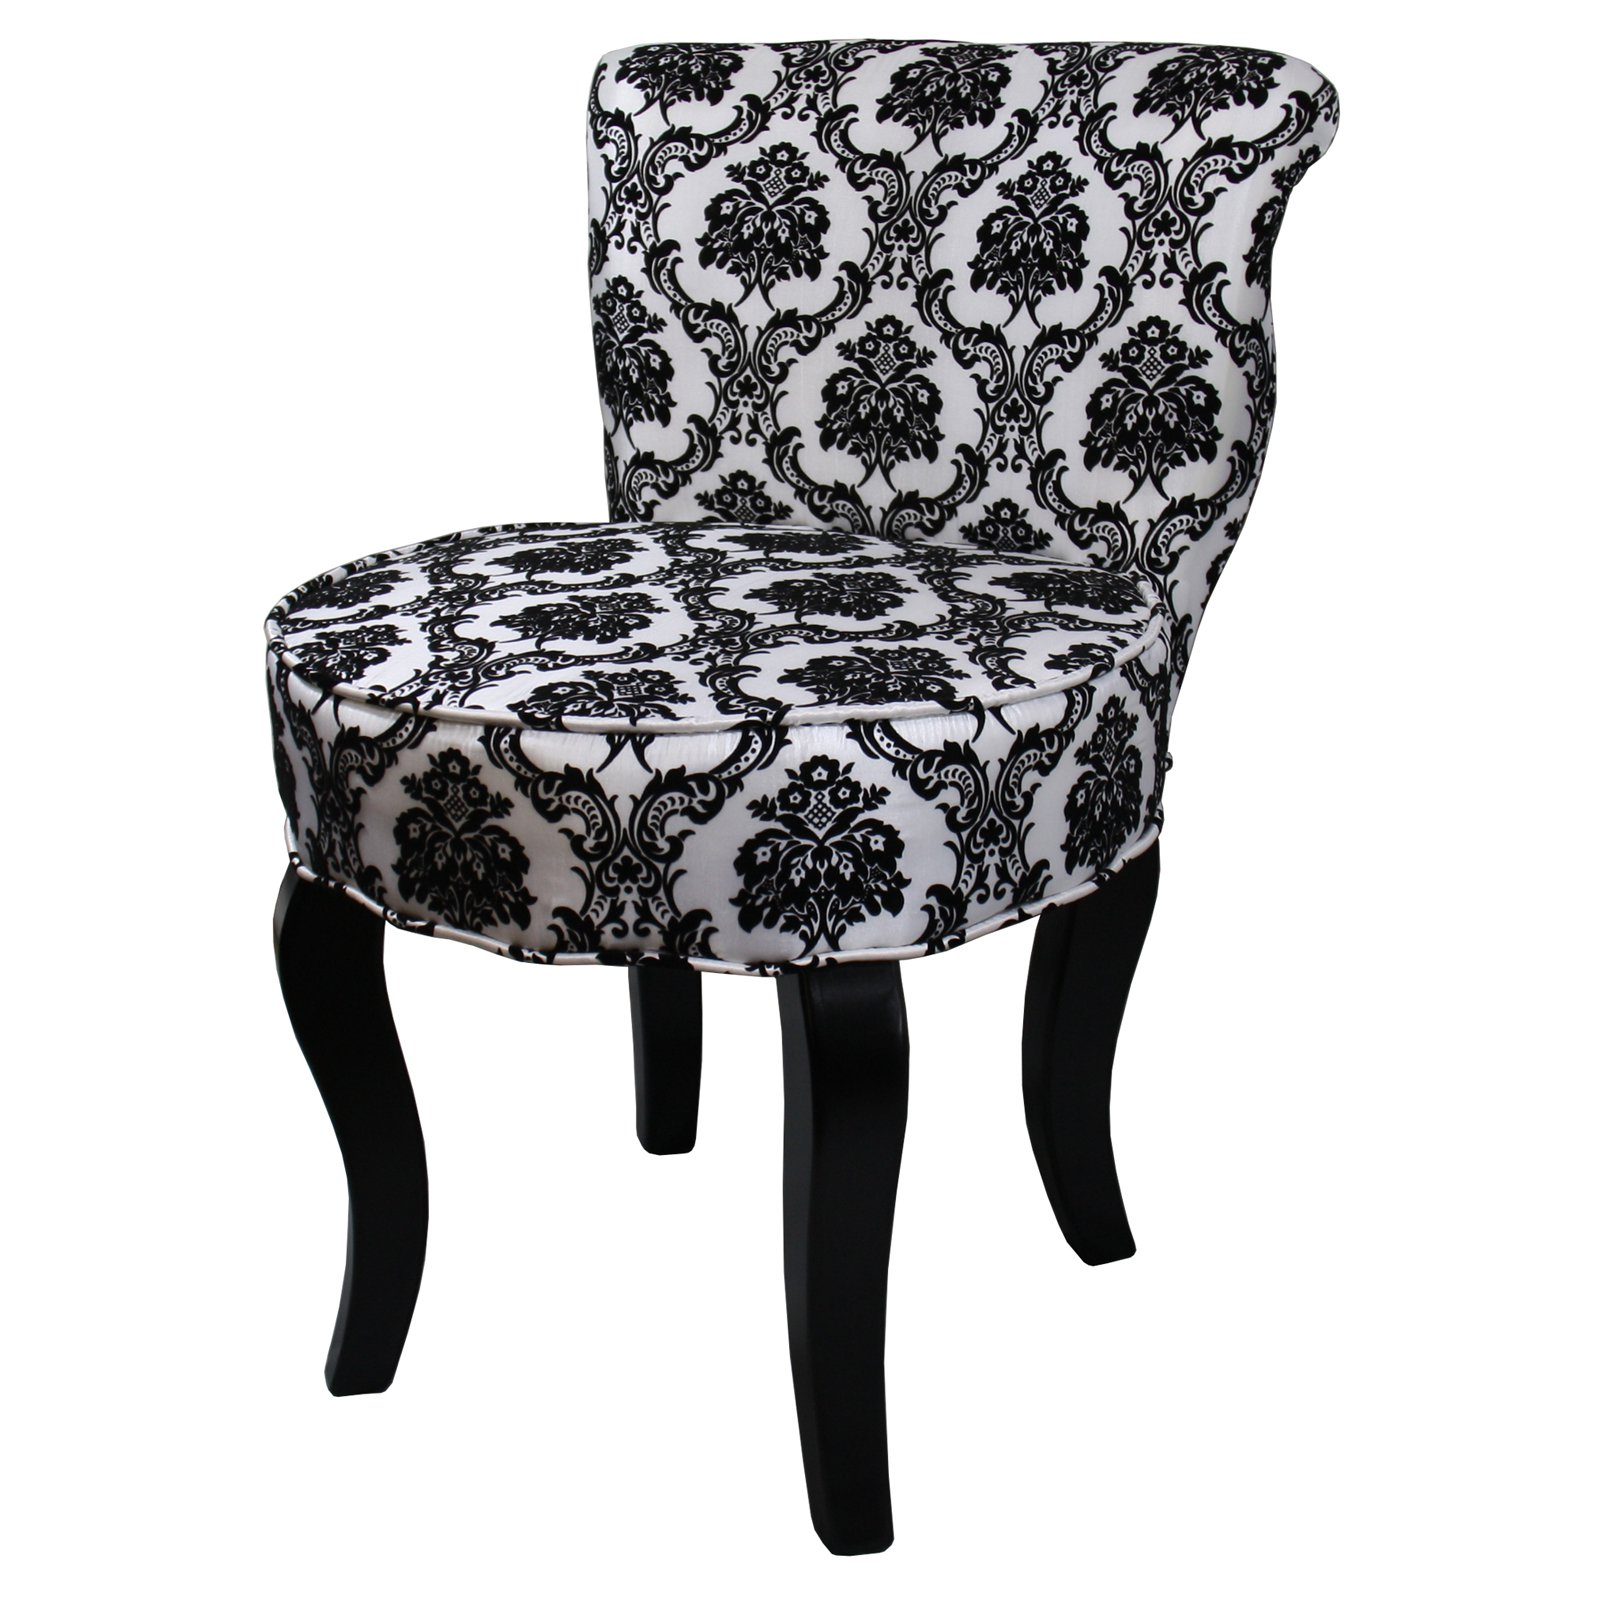 Damask Chair 31